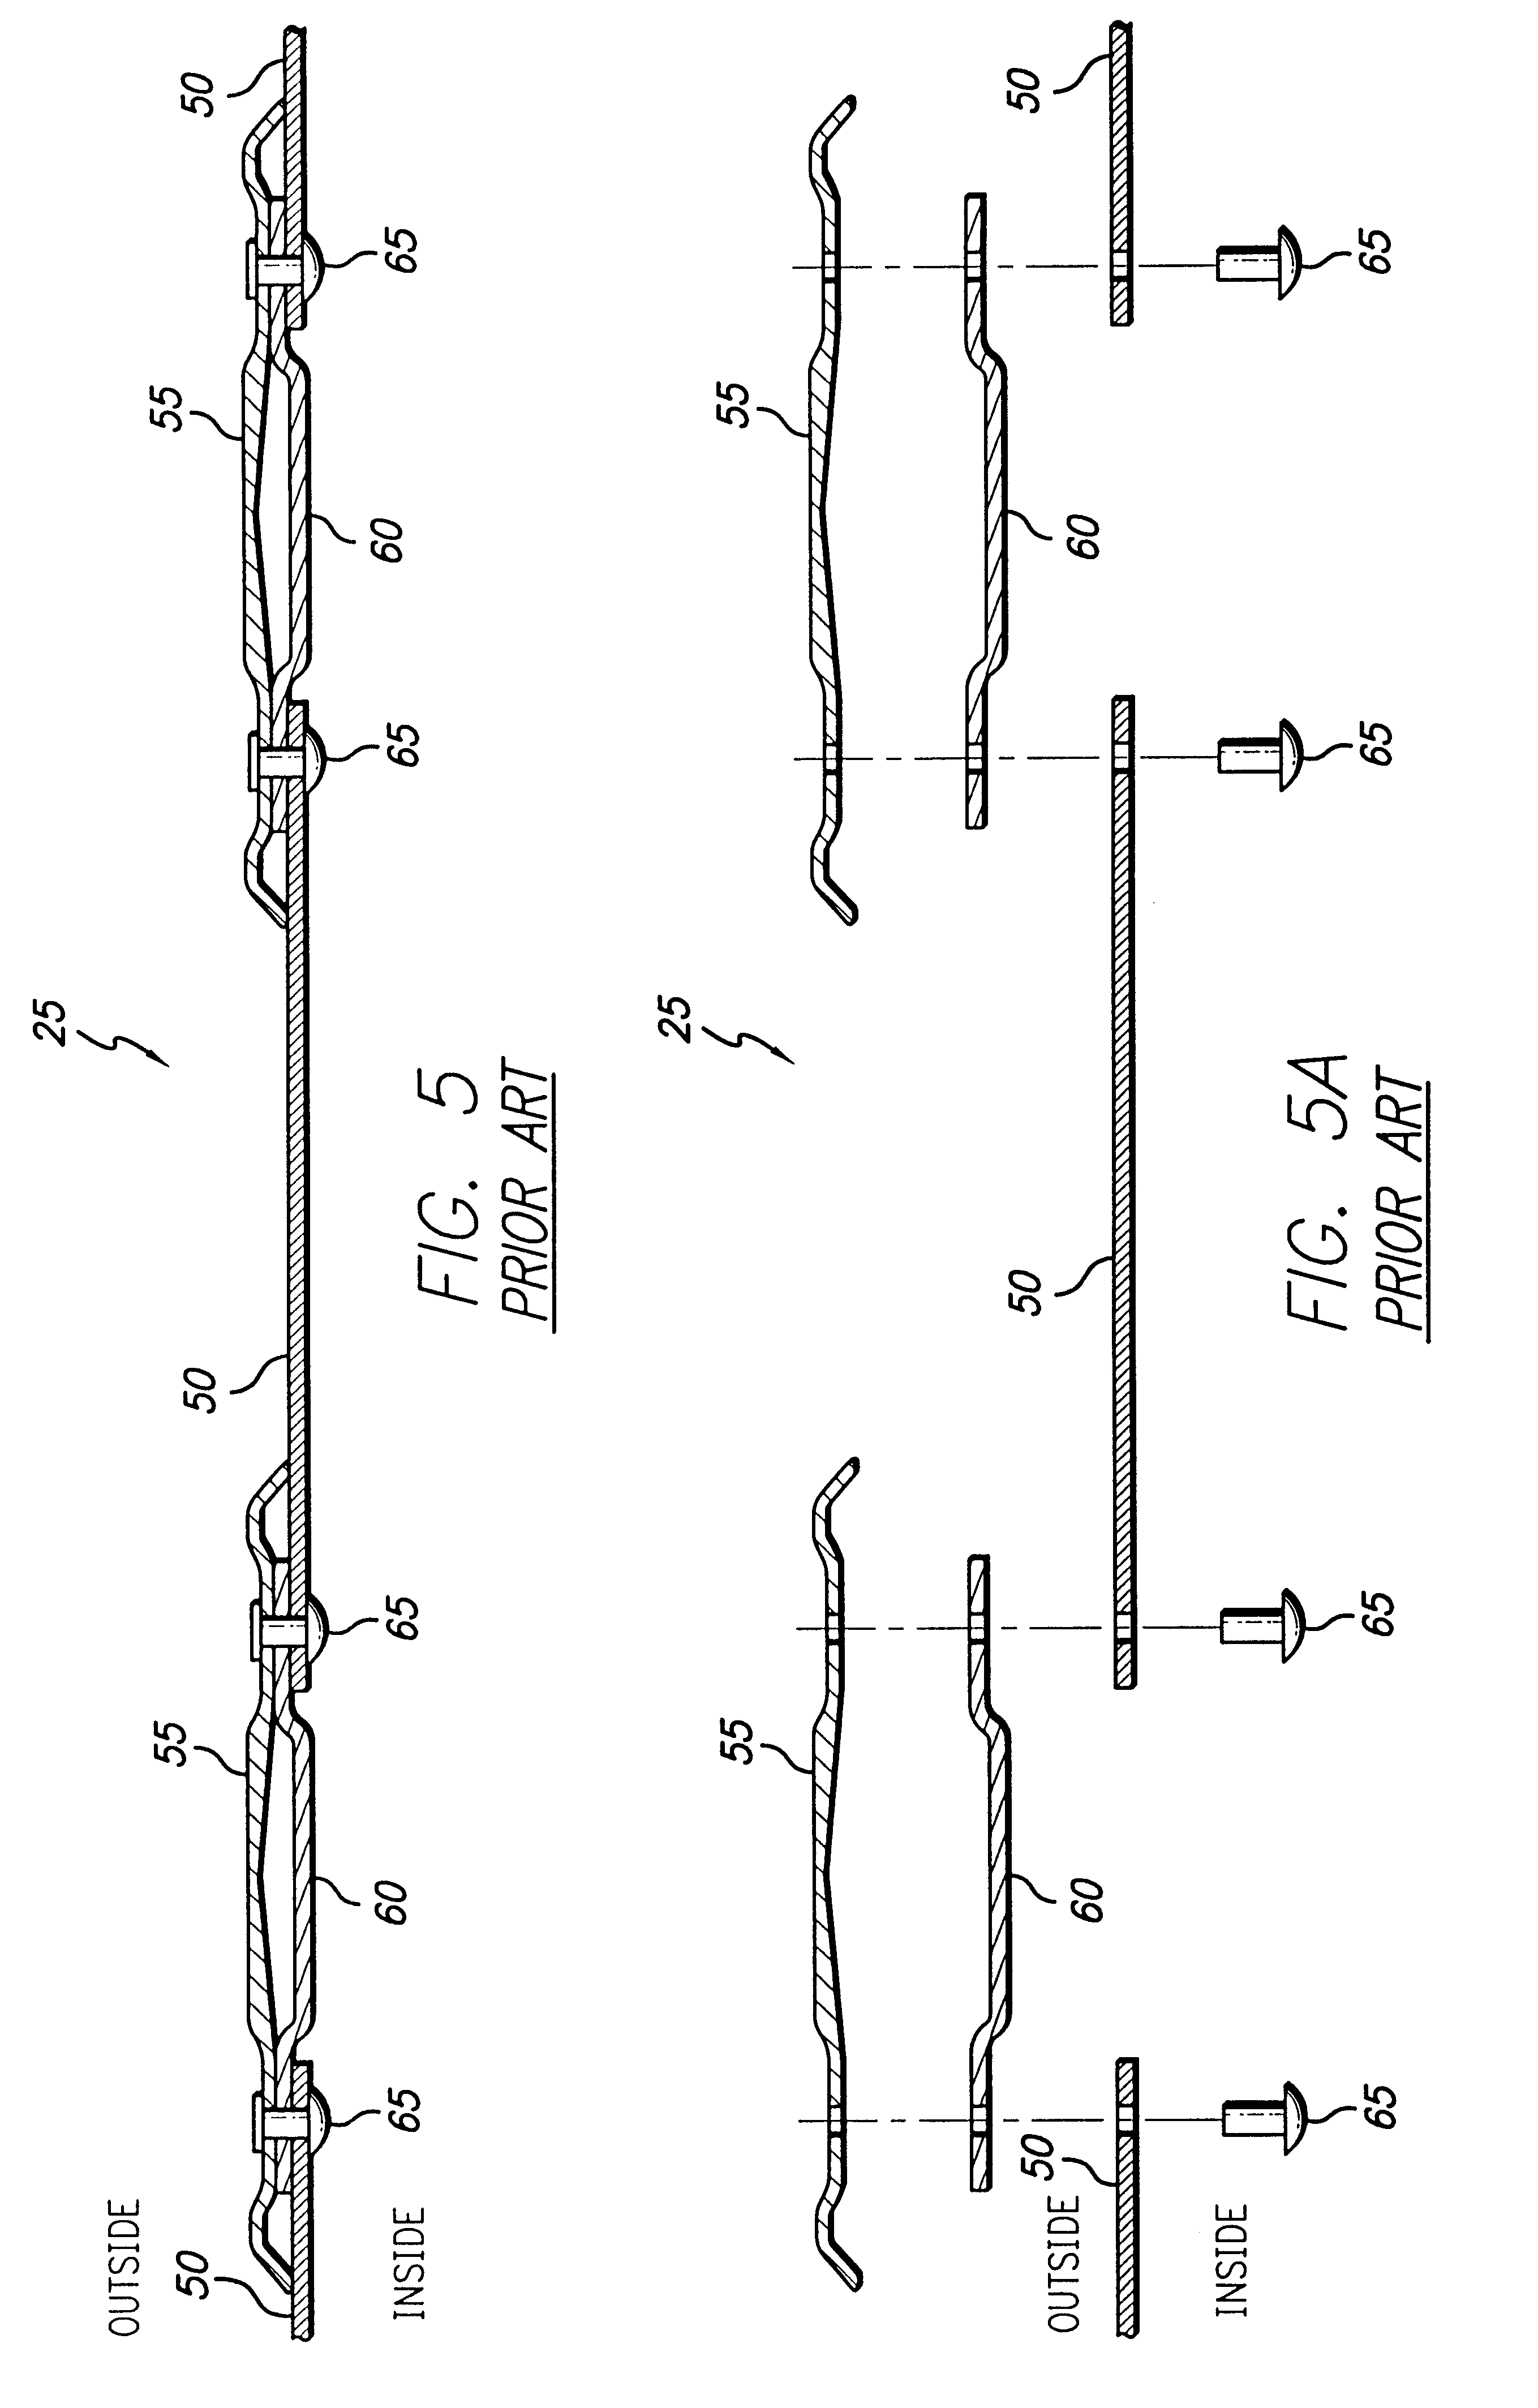 Patent Us6527335 Method And Apparatus For Coupling Trailer Plates Hyundai Translead Wiring Diagram Drawing